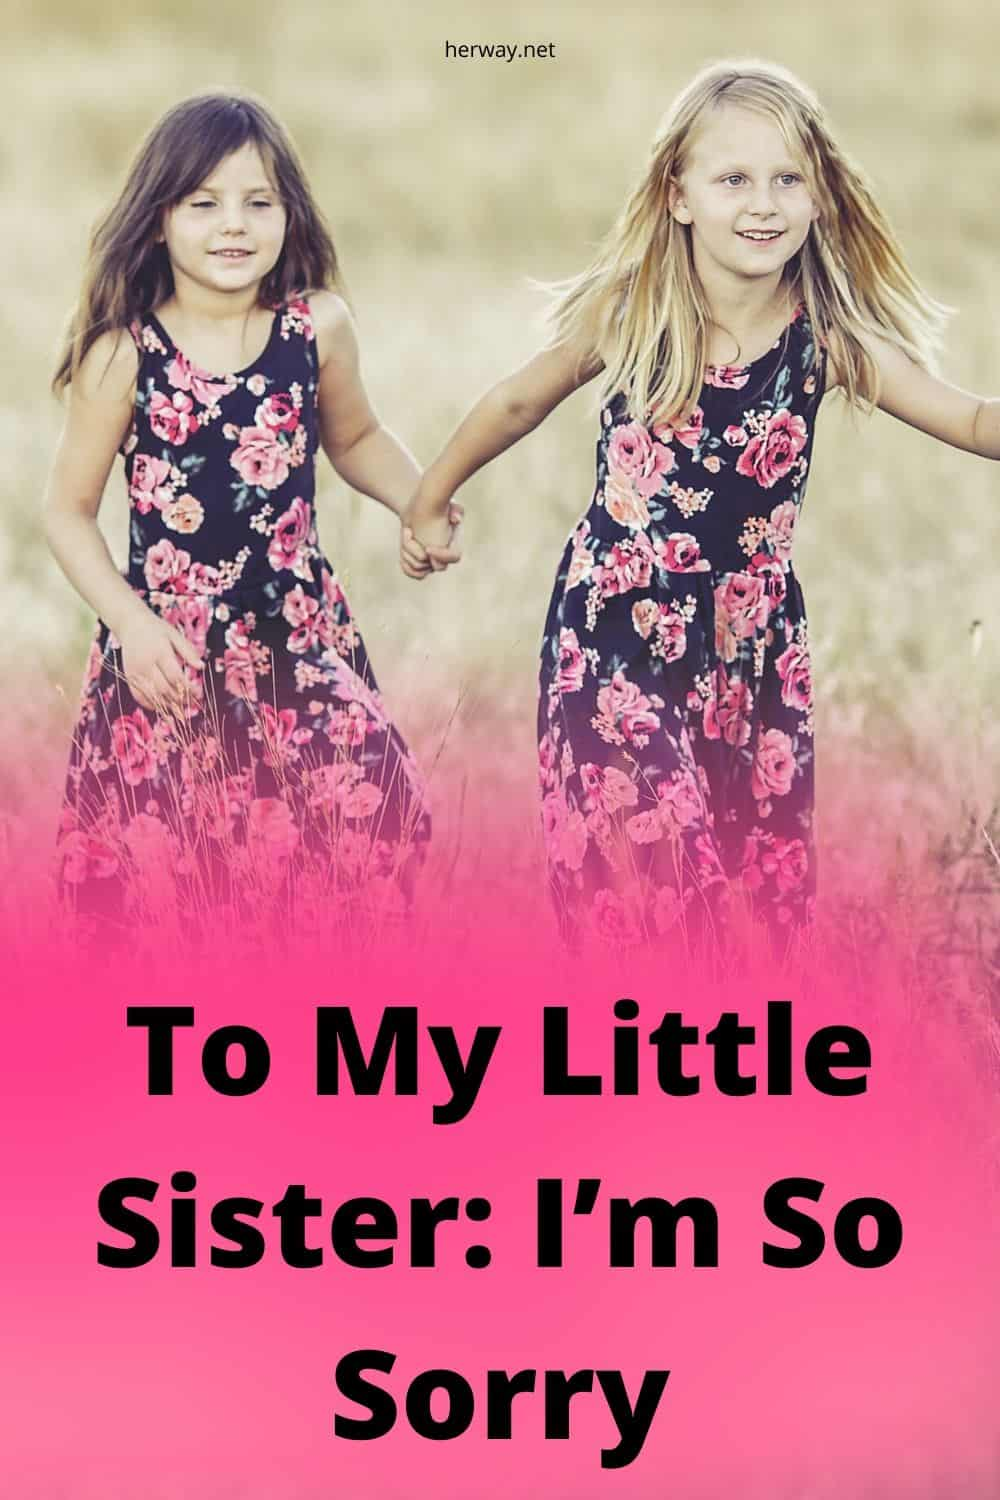 To My Little Sister: I'm So Sorry